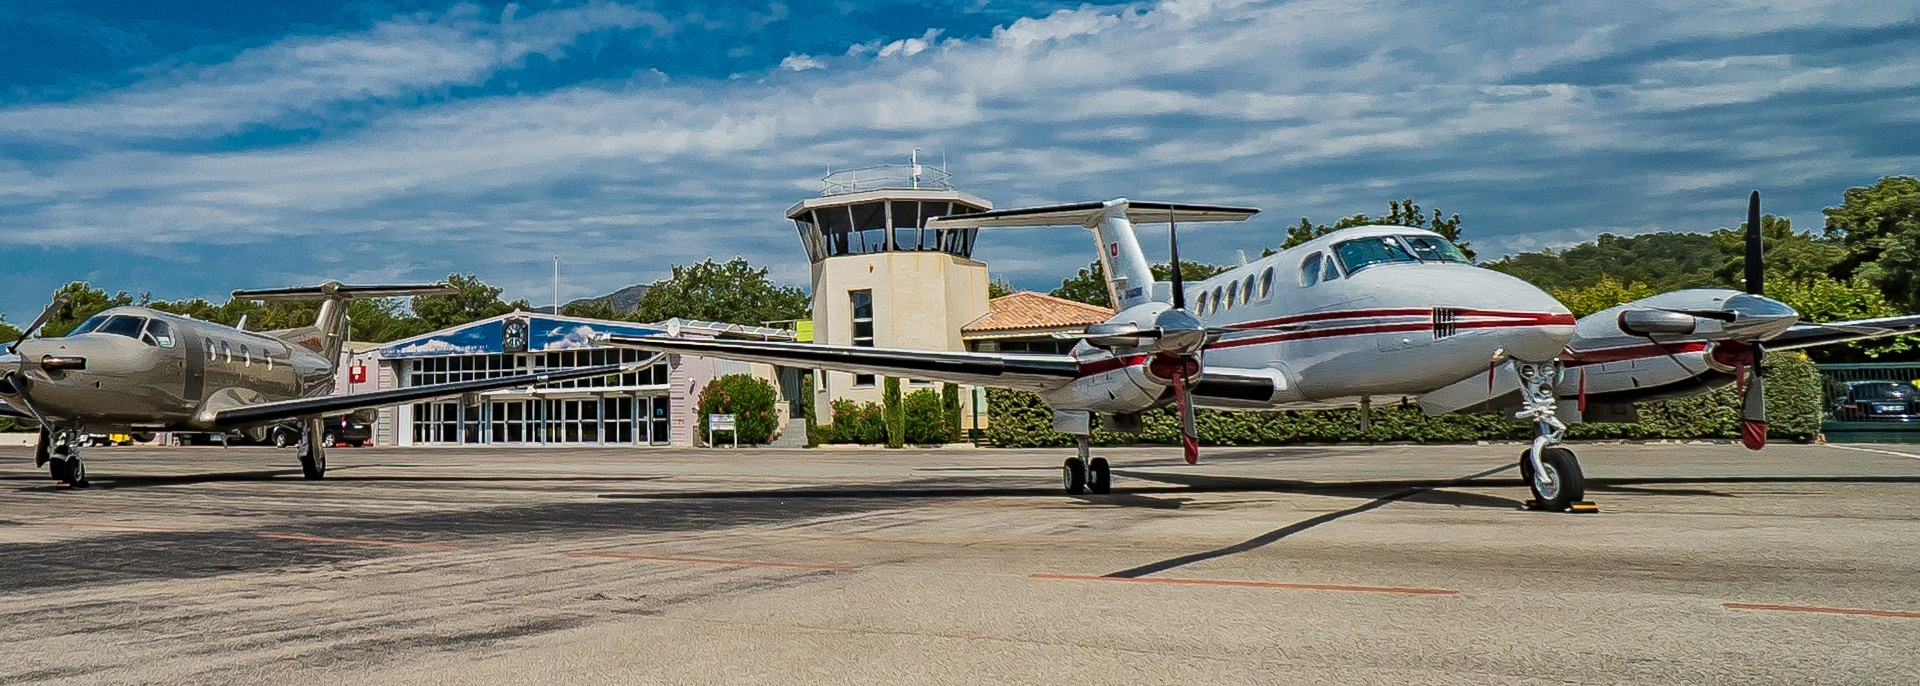 Aéroport International Saint-Tropez